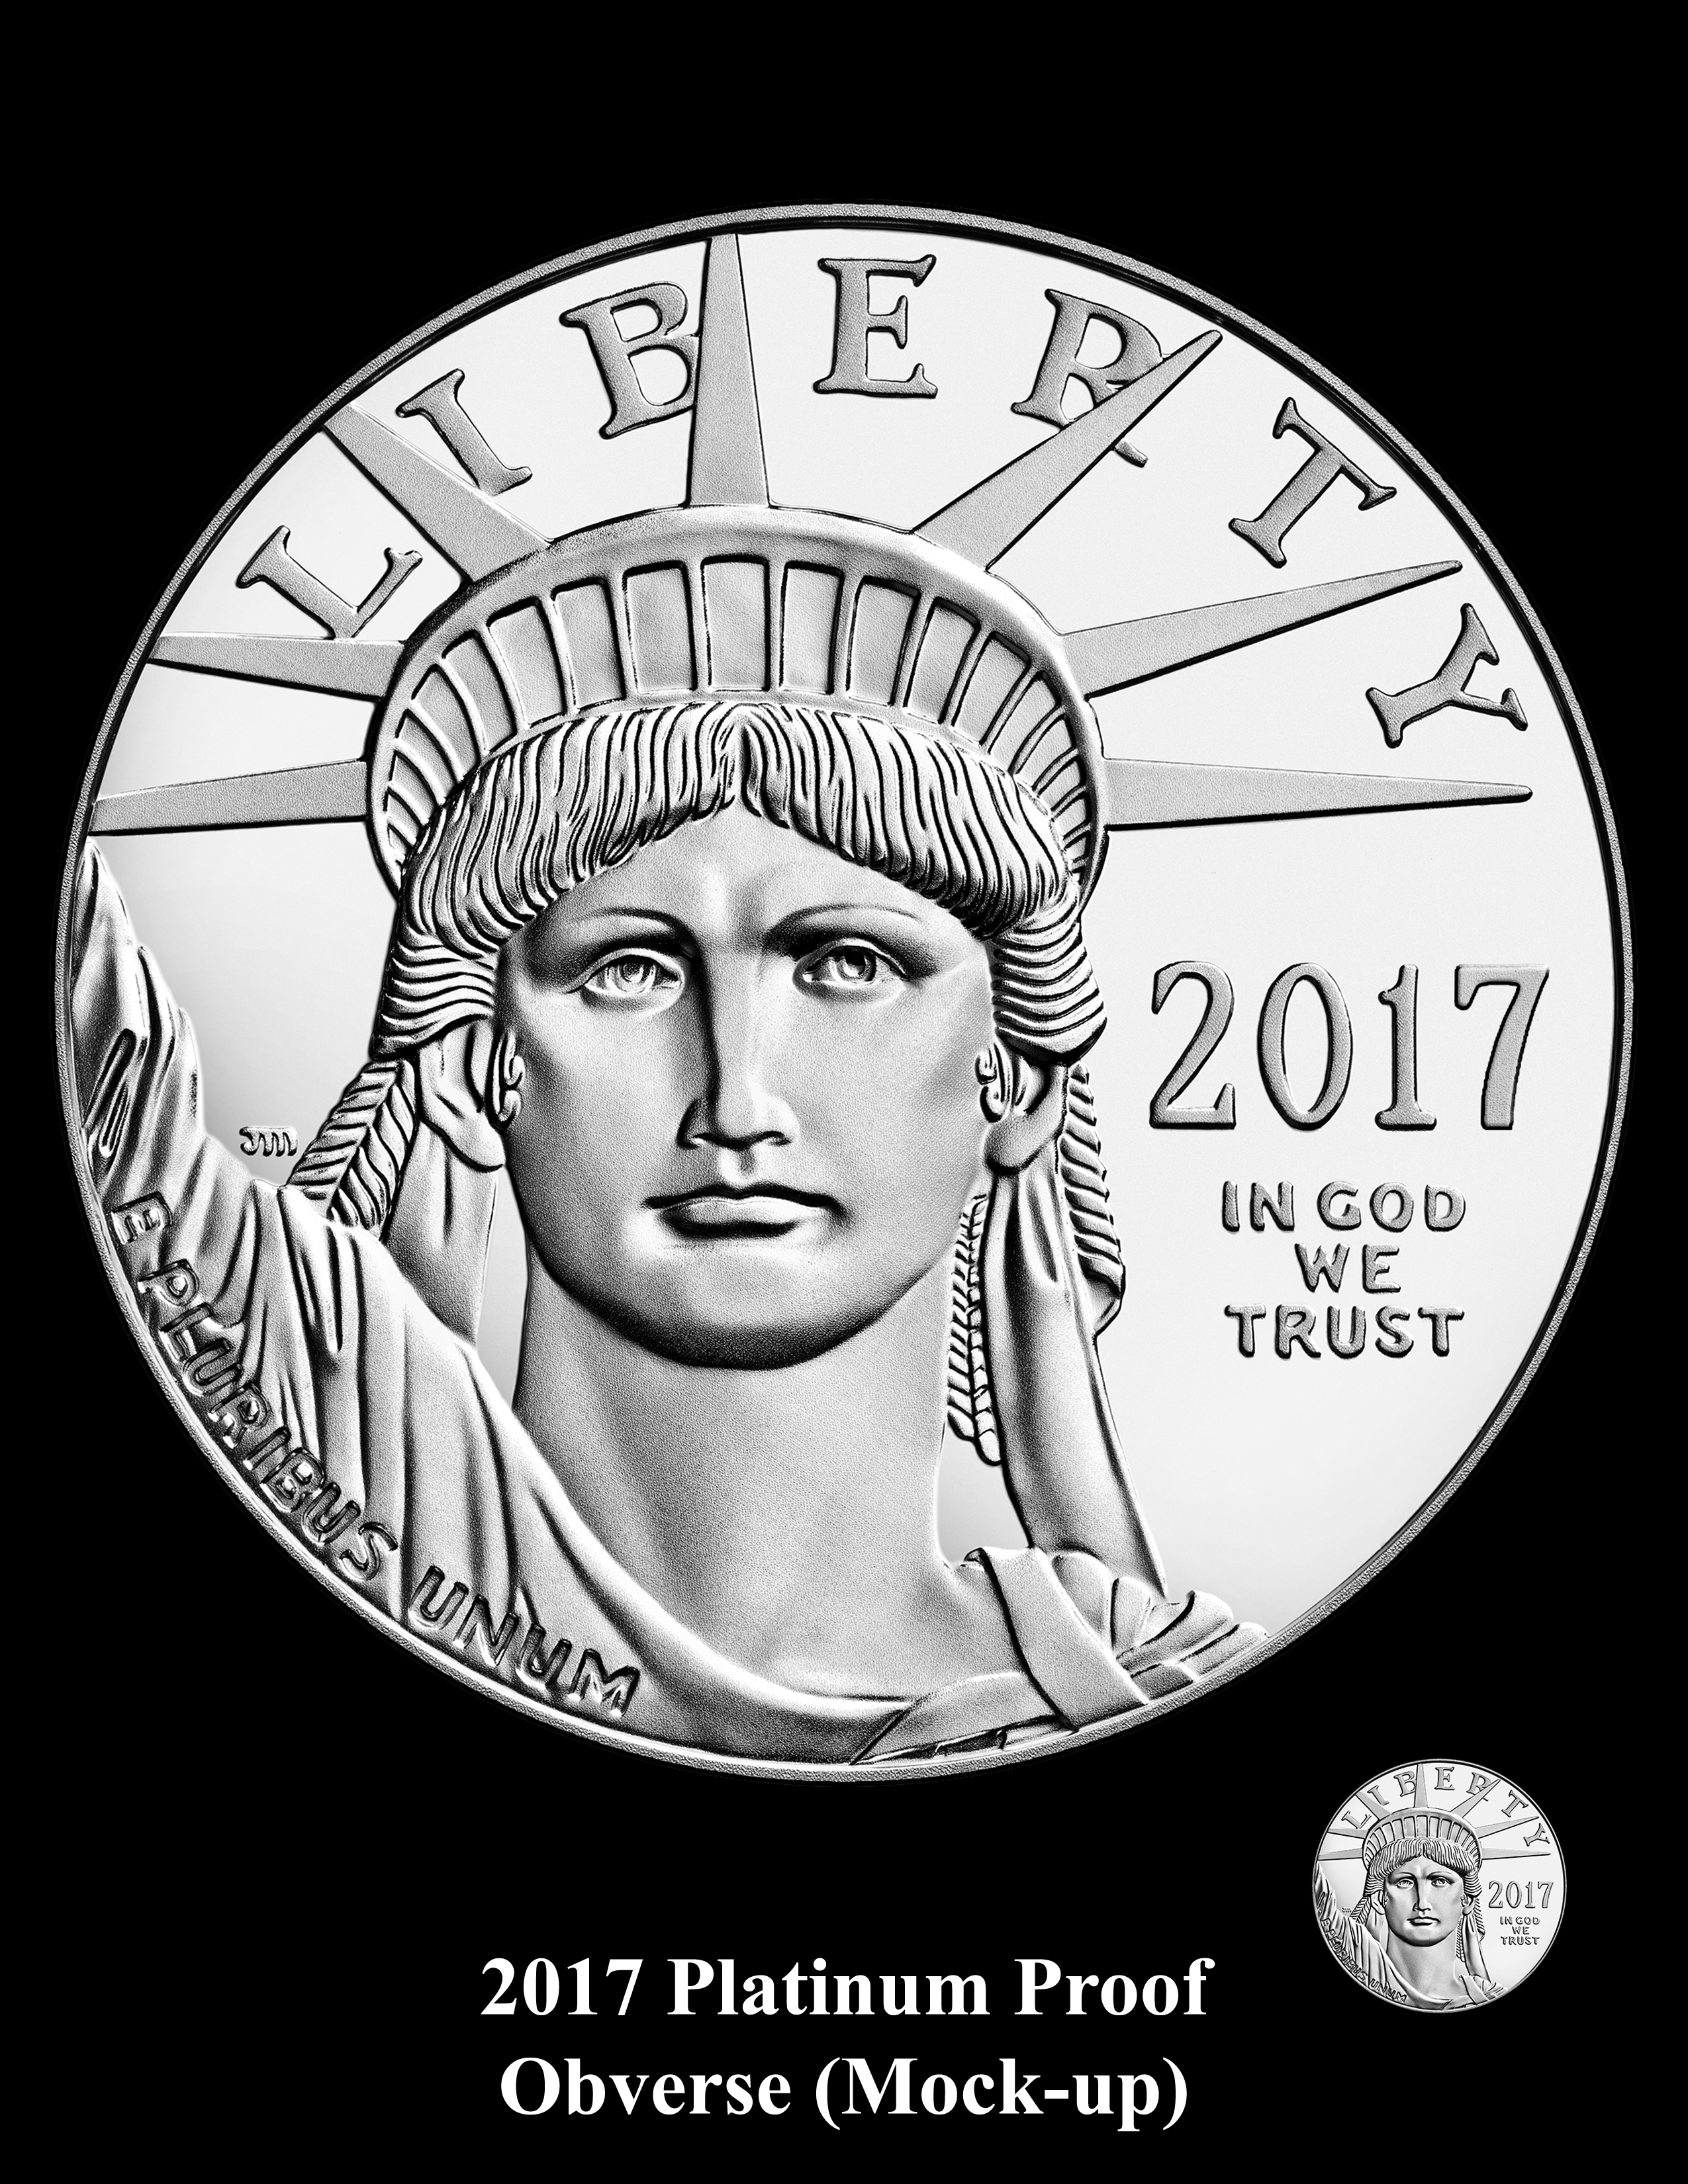 2017-AE-PlatinumPrf-O-Mock-Up-BK - 2017 20th Anniversary Platinum Proof Coin